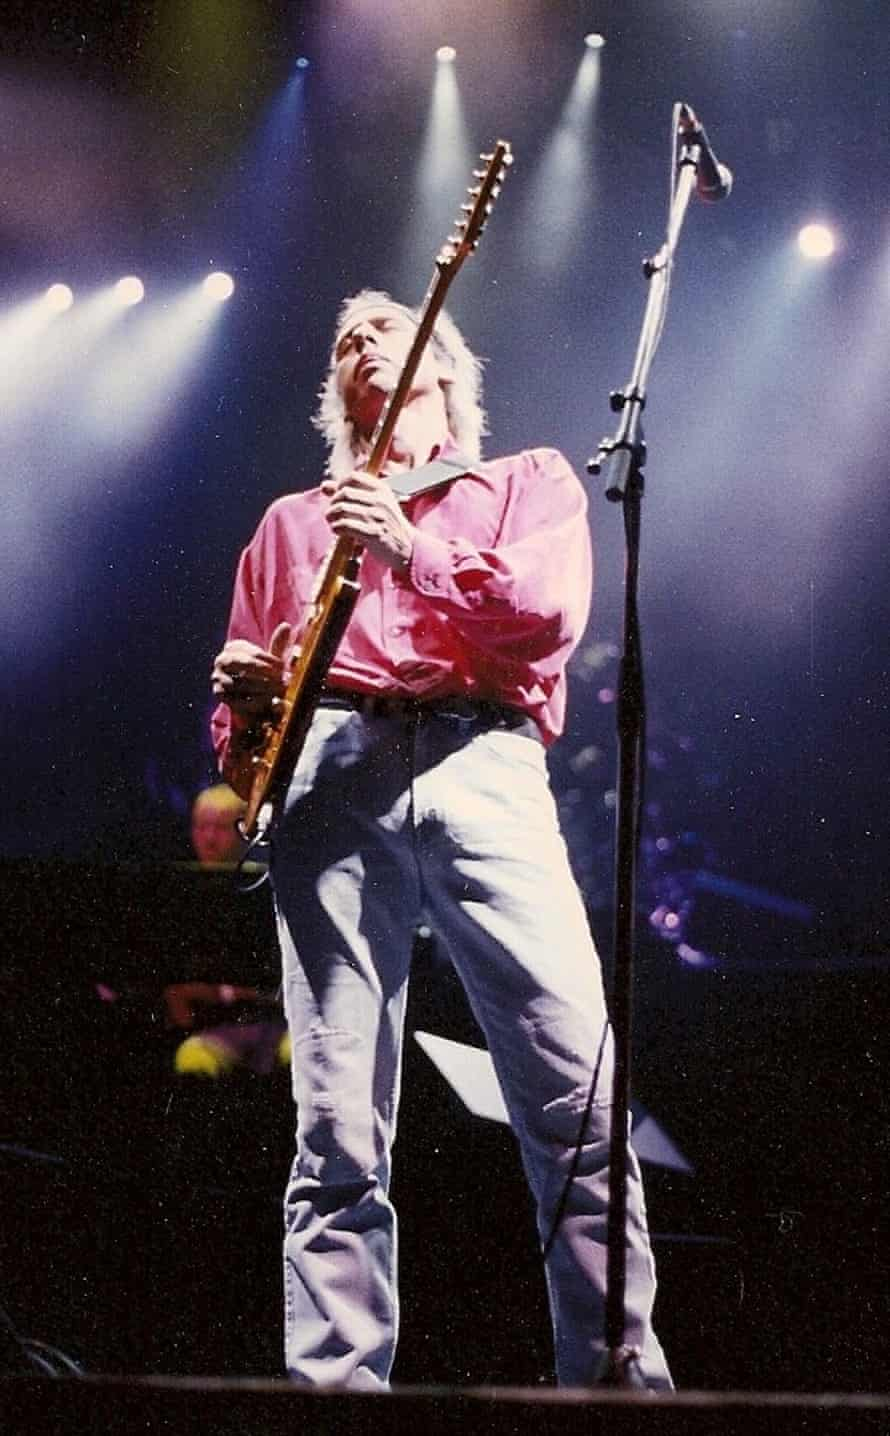 Mark Knopfler at the Forum in Inglewood, Los Angeles, during Dire Straits' last US tour.